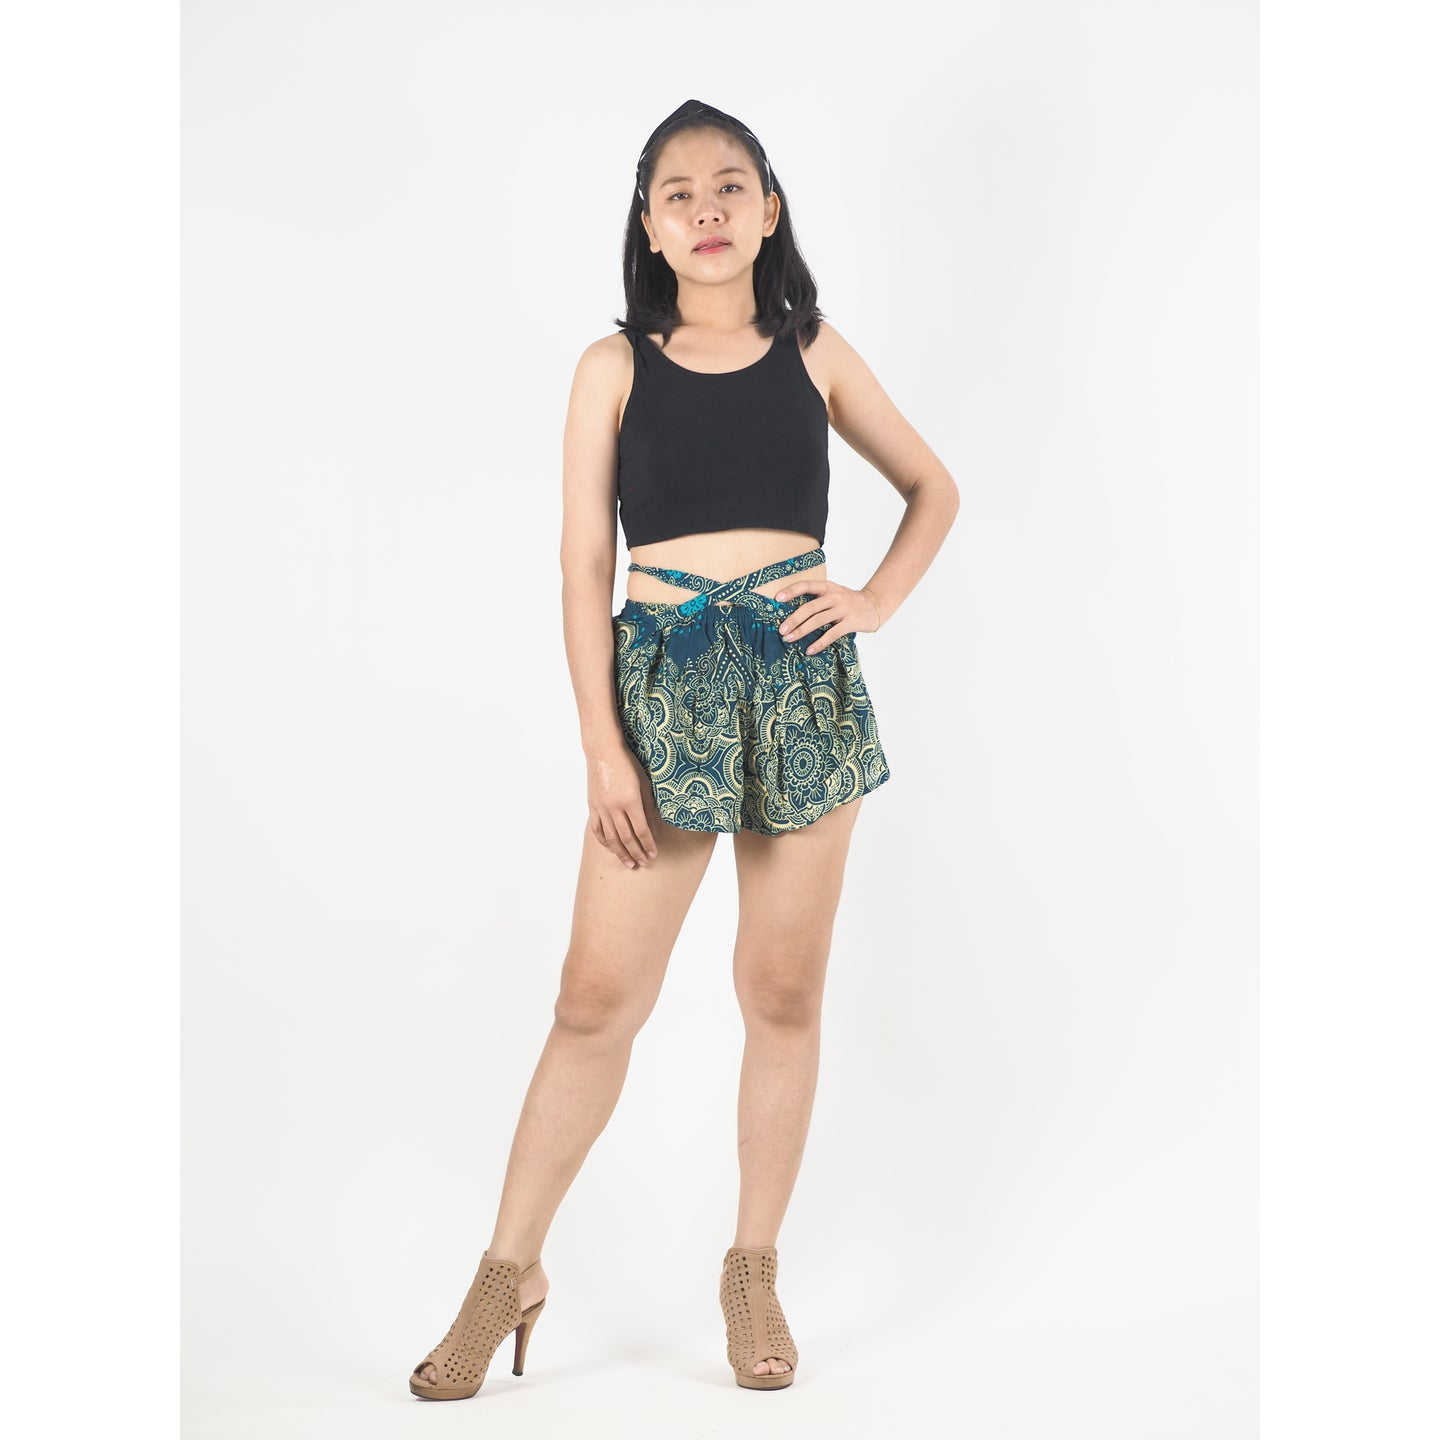 Temple Flower Women's Blooming Shorts Pants in Ocean Blue PP0206 020159 01